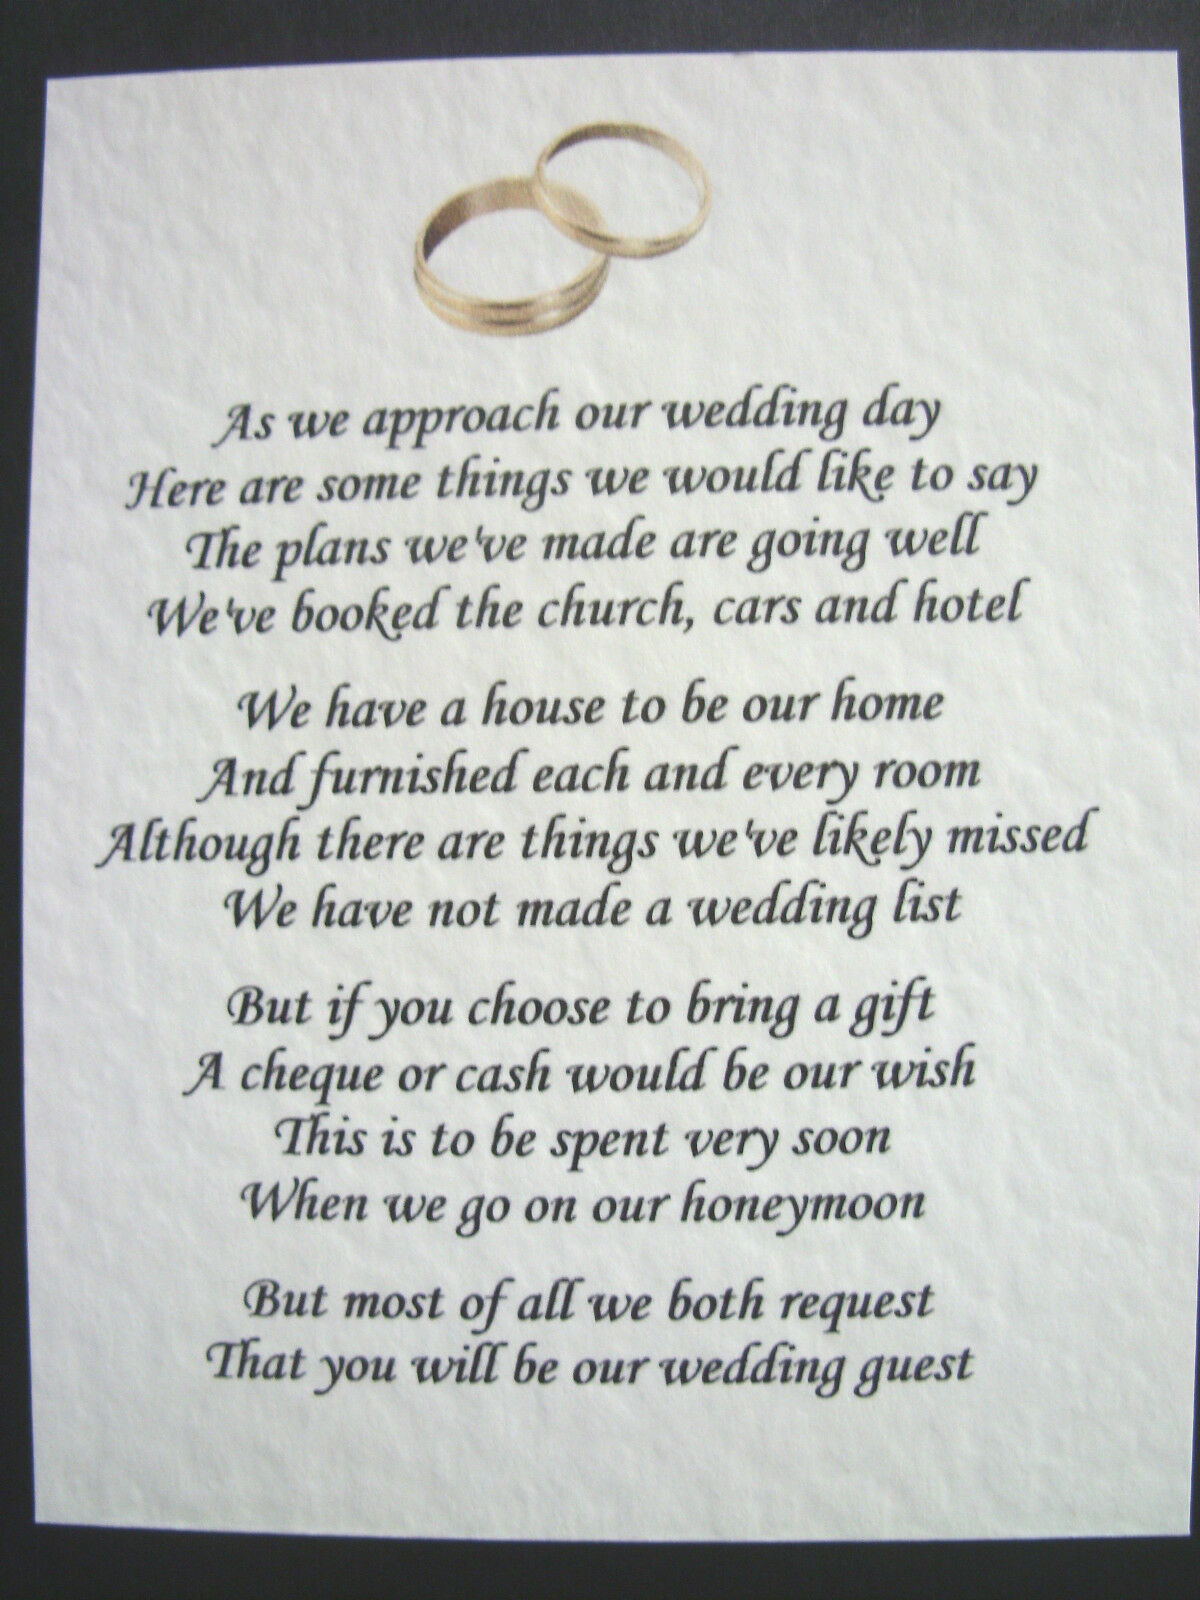 Wedding Gift For Sister Cash : ... Wedding Poem Cards Money Cash Gift Ask For Money Invitation Inserts